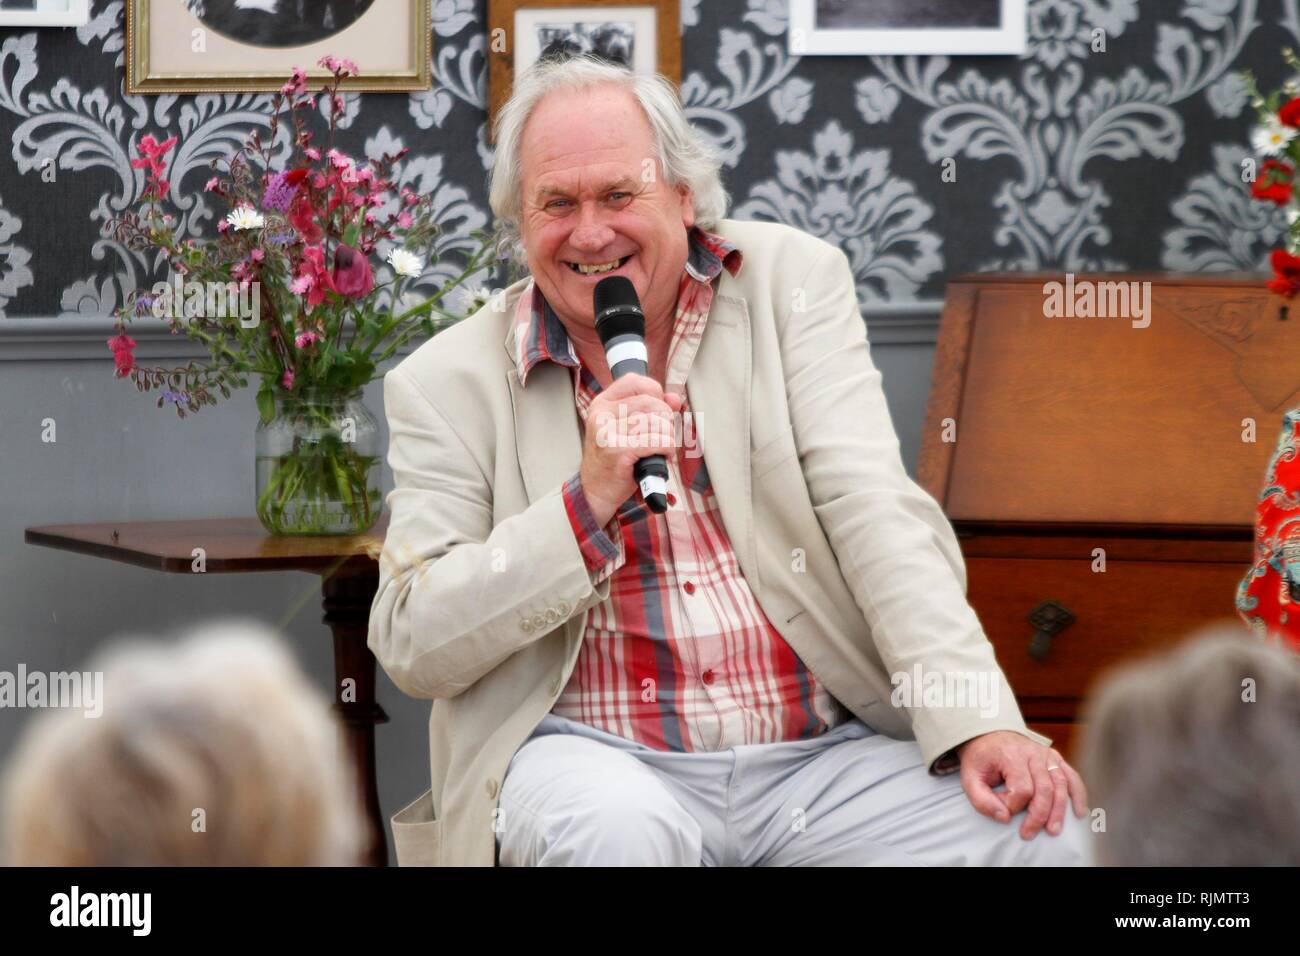 Bbc Radio 4 Stock Photos & Bbc Radio 4 Stock Images - Alamy